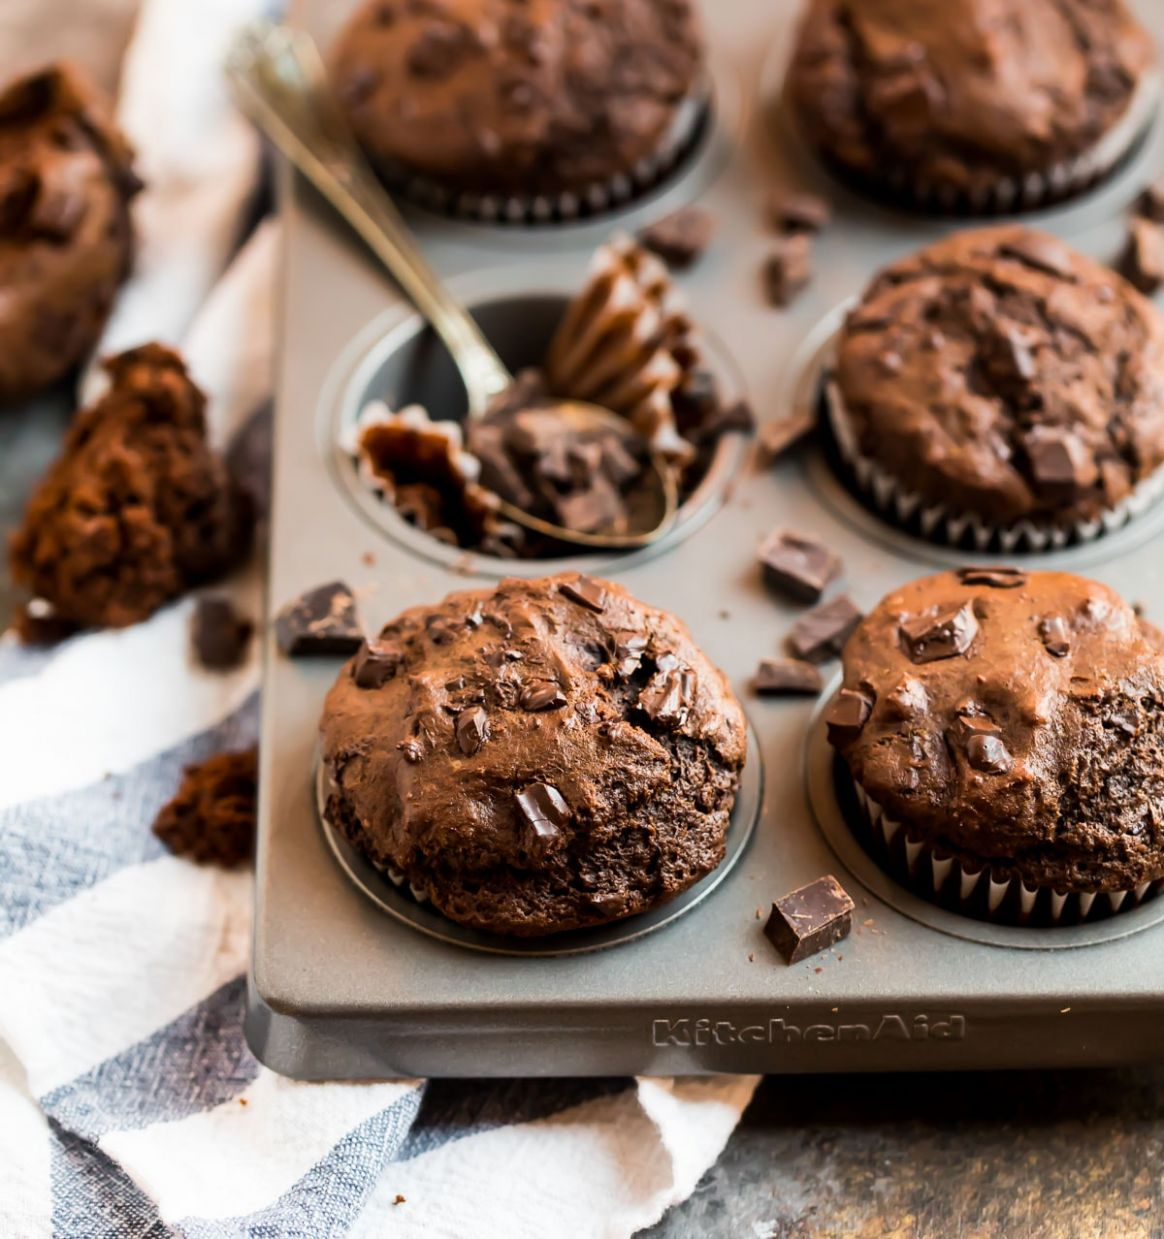 Chocolate Muffins - Recipes Chocolate Muffins